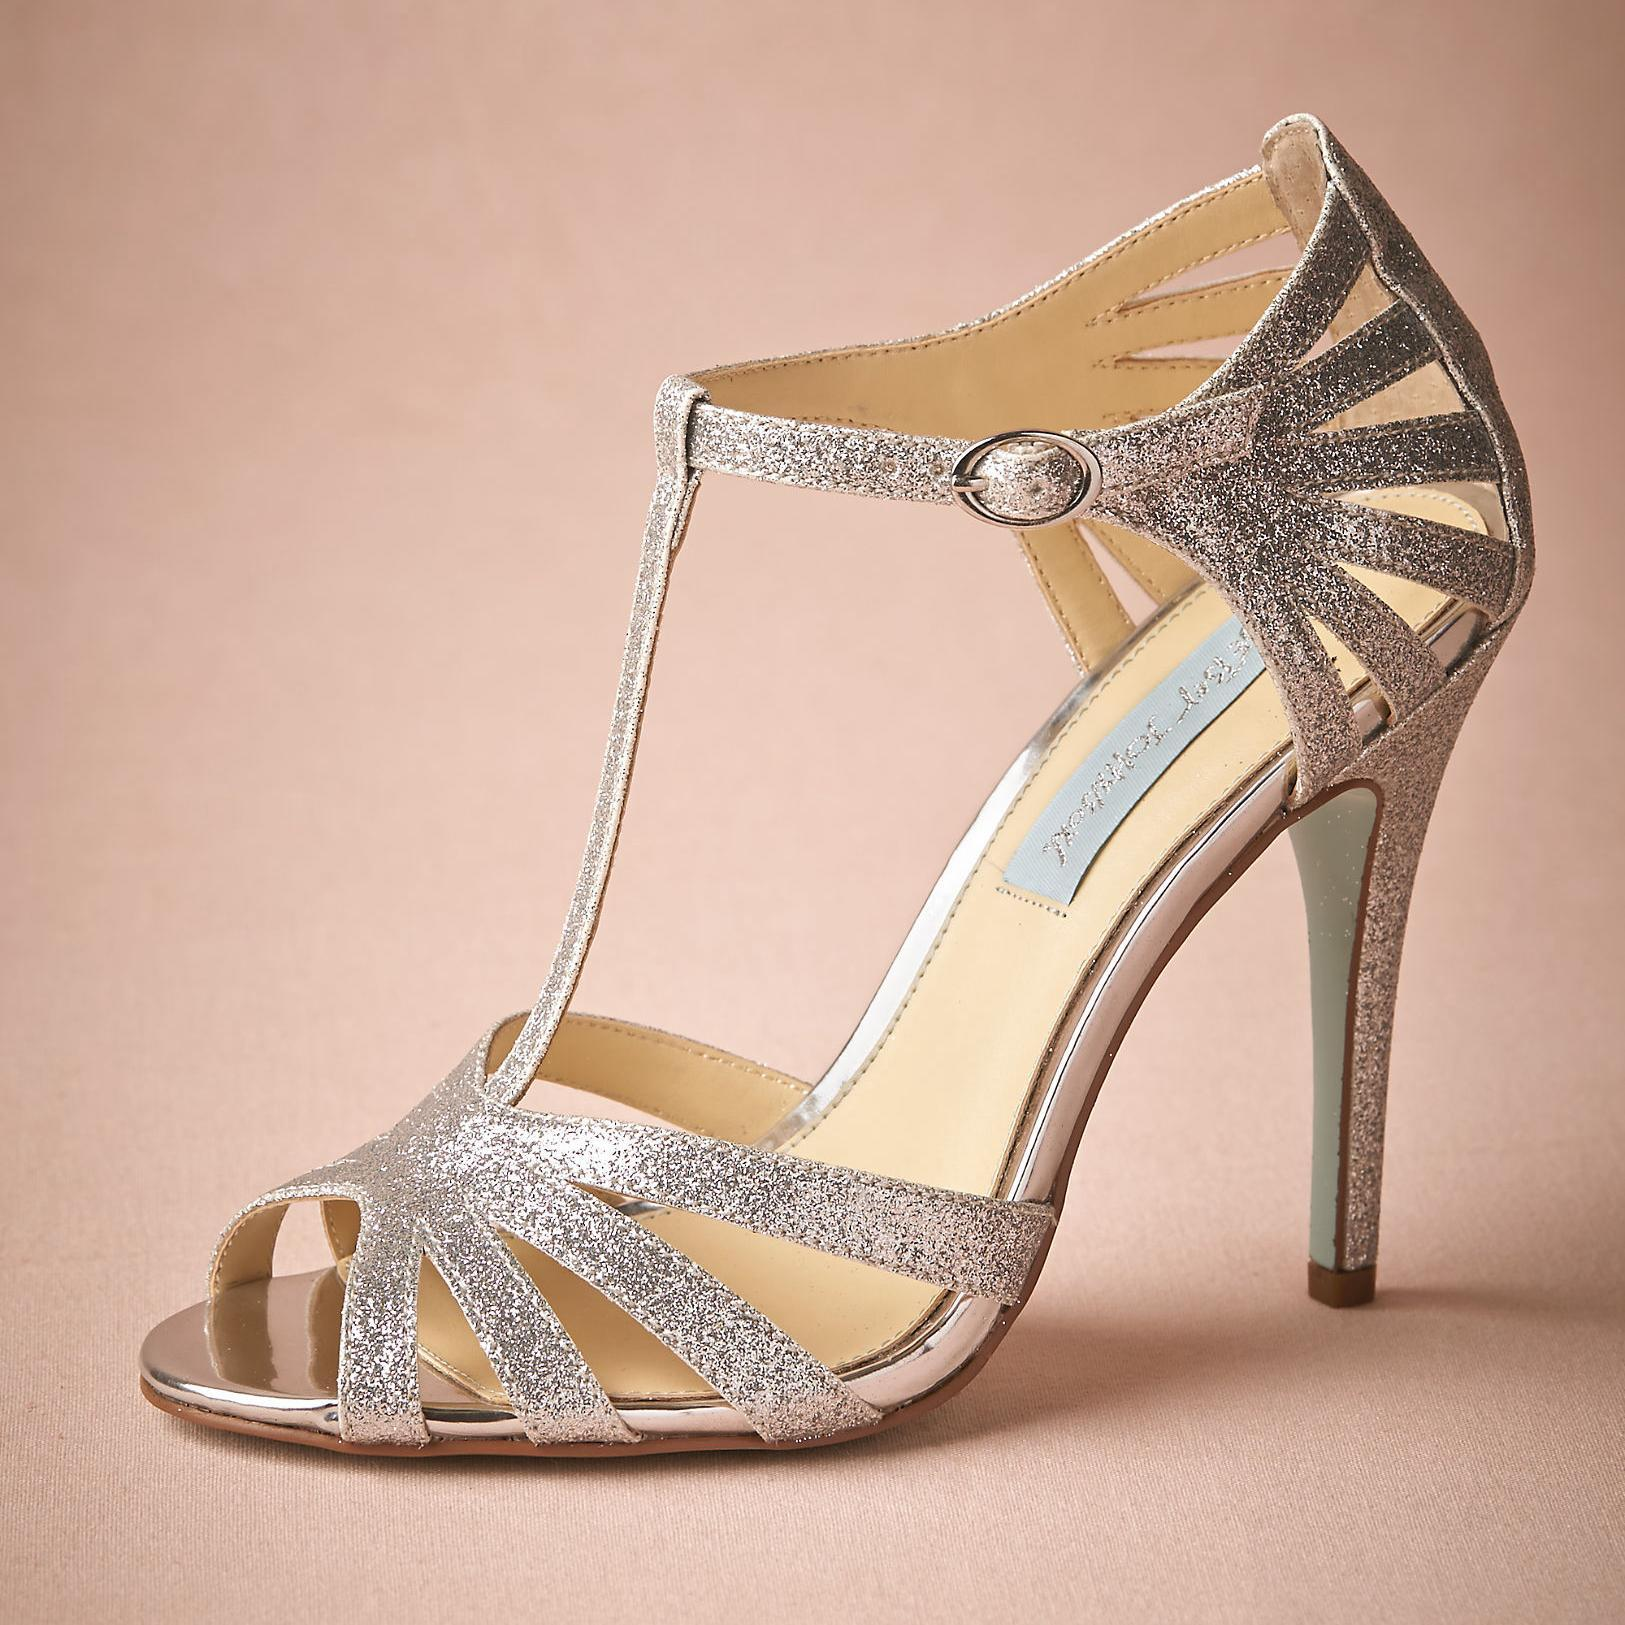 84 silver shoes for wedding Silver Glittery Wedding Shoes Handmade Pumps T Strap Leather Sole